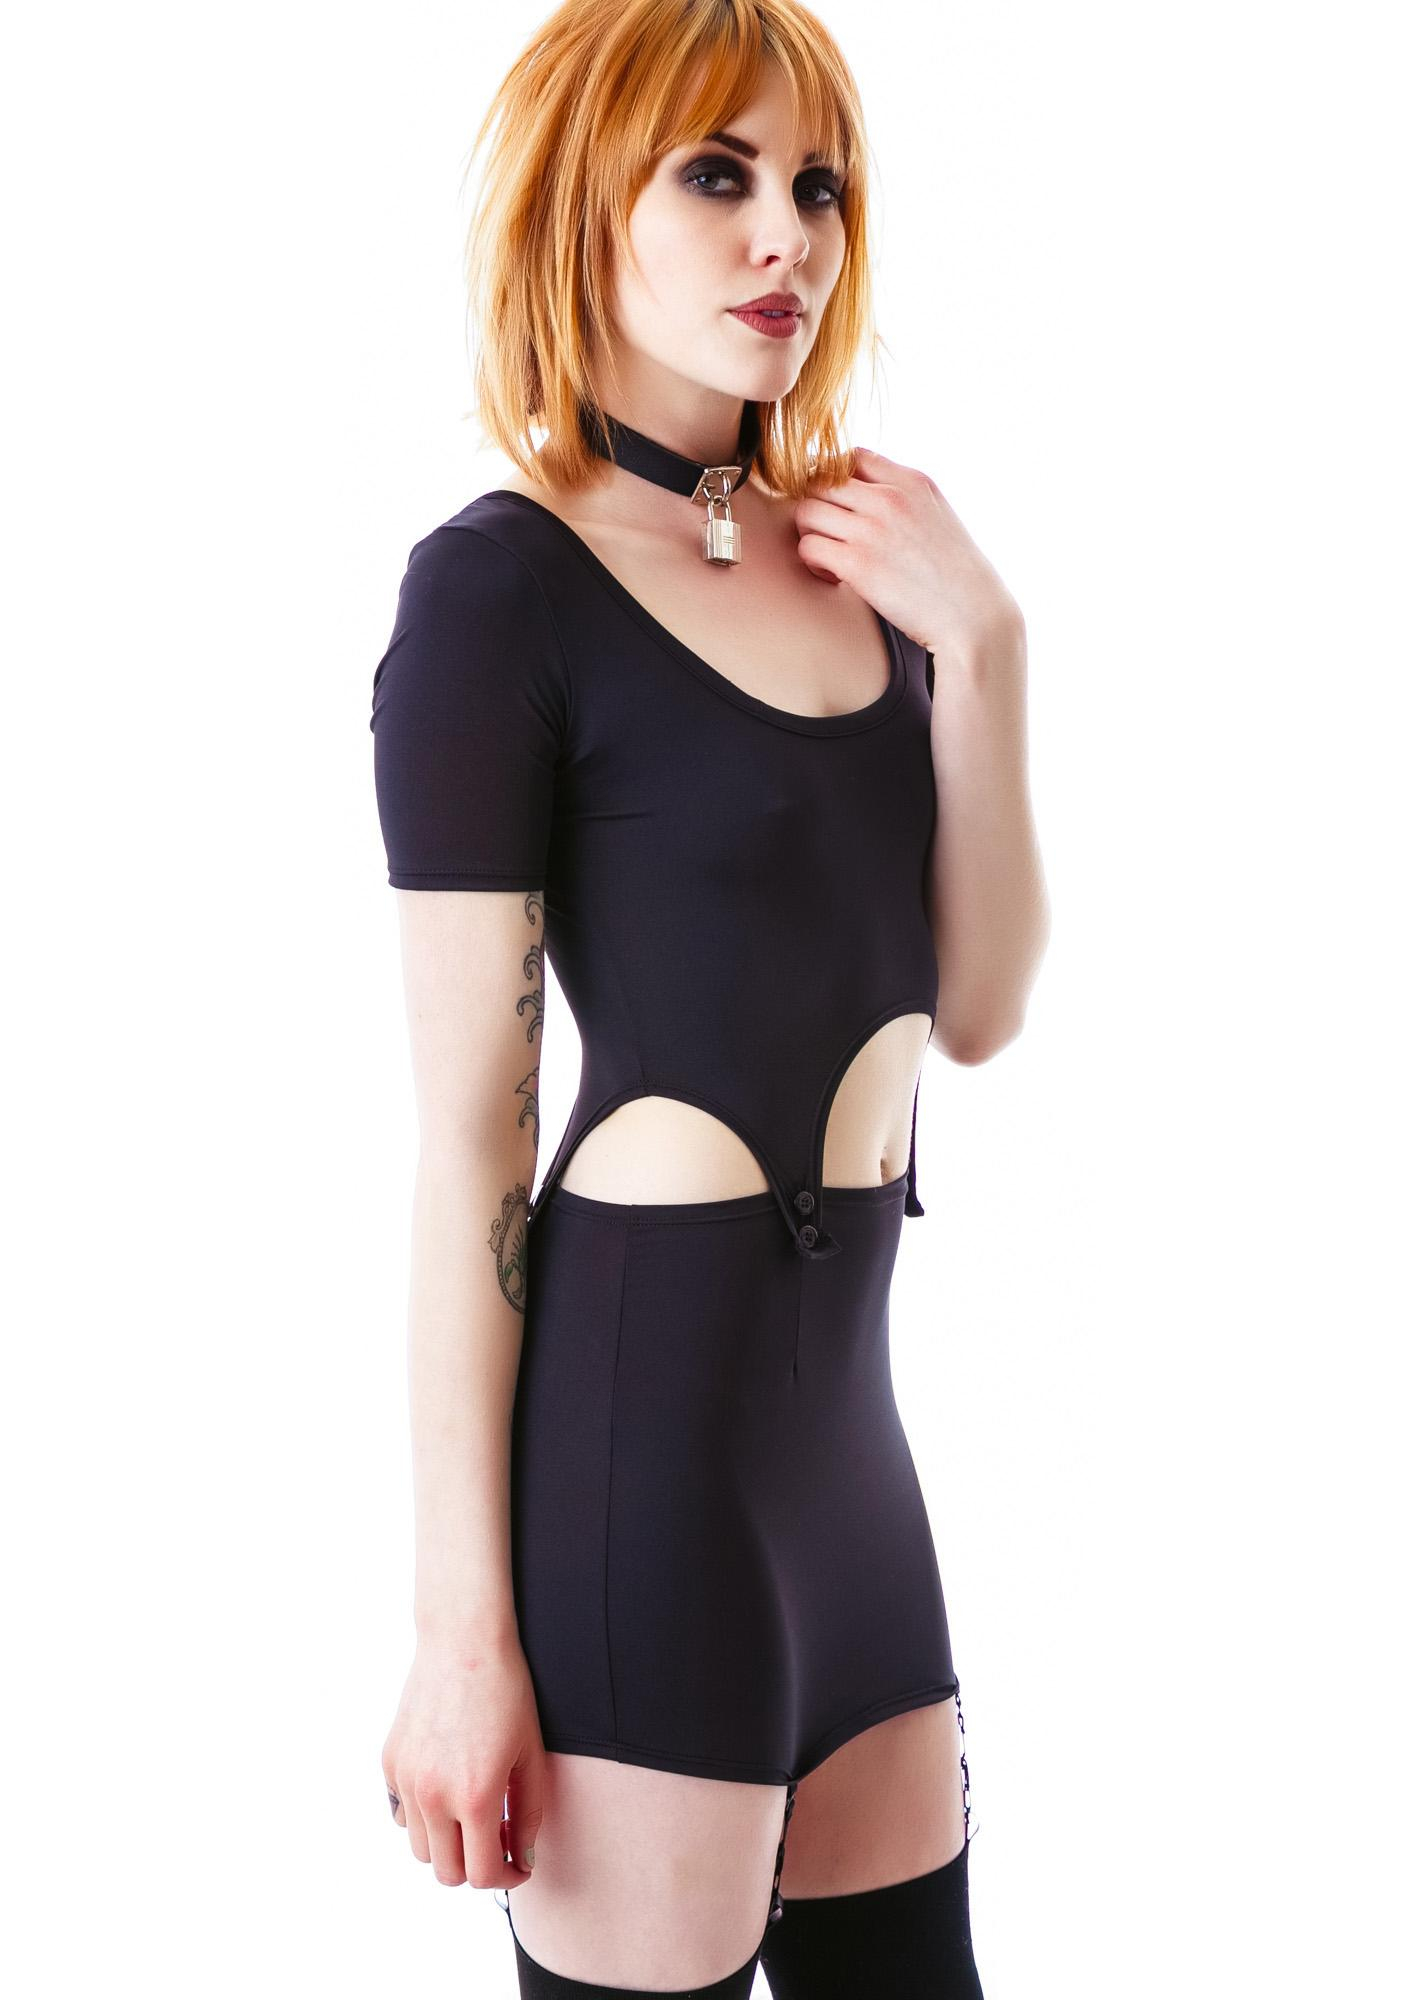 Drop Top Suspender Dress